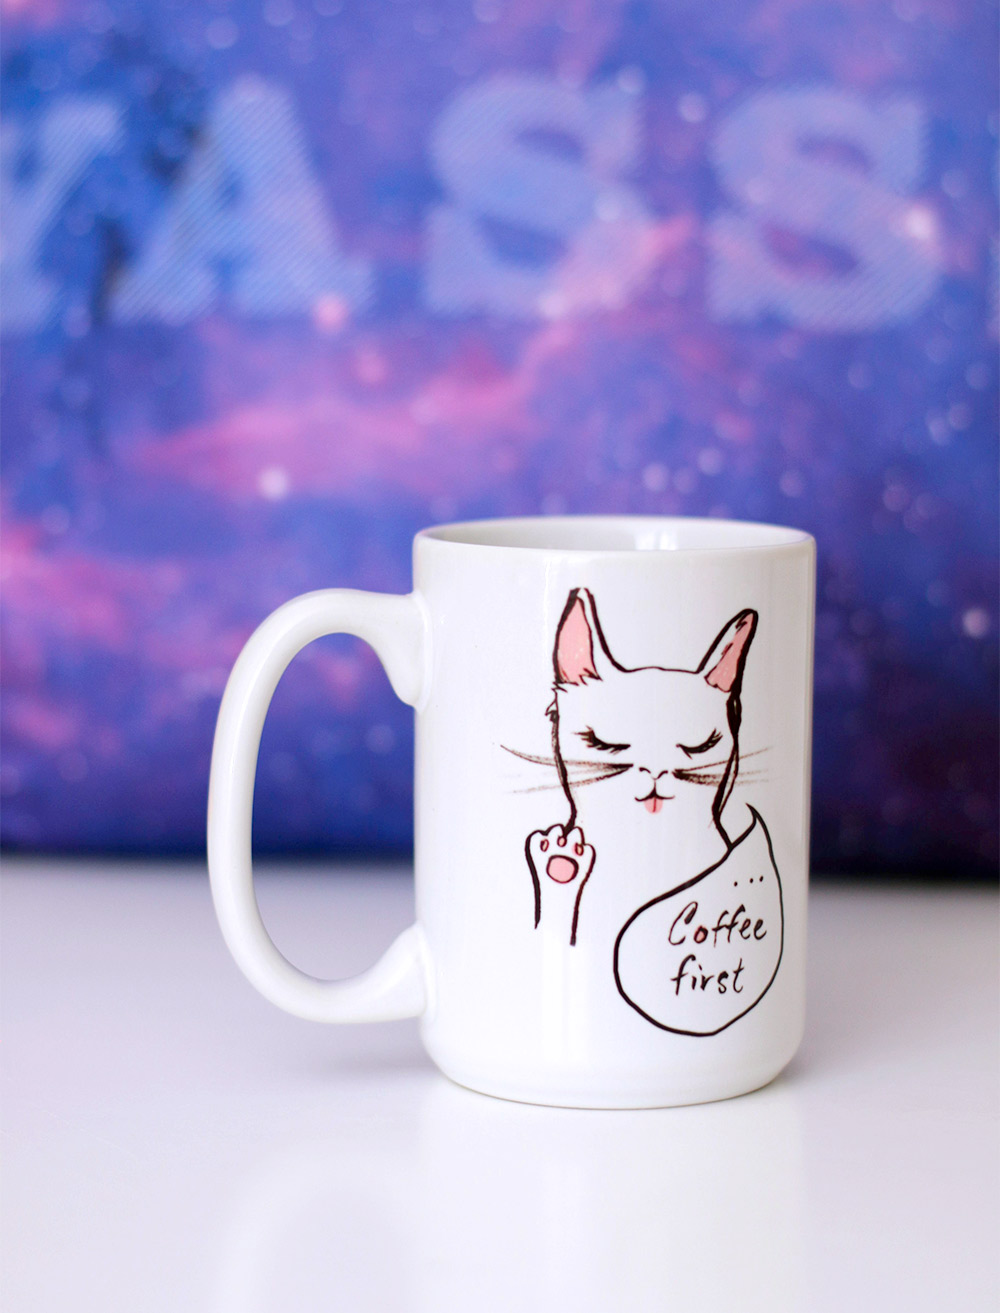 coffee first mug product spotlight